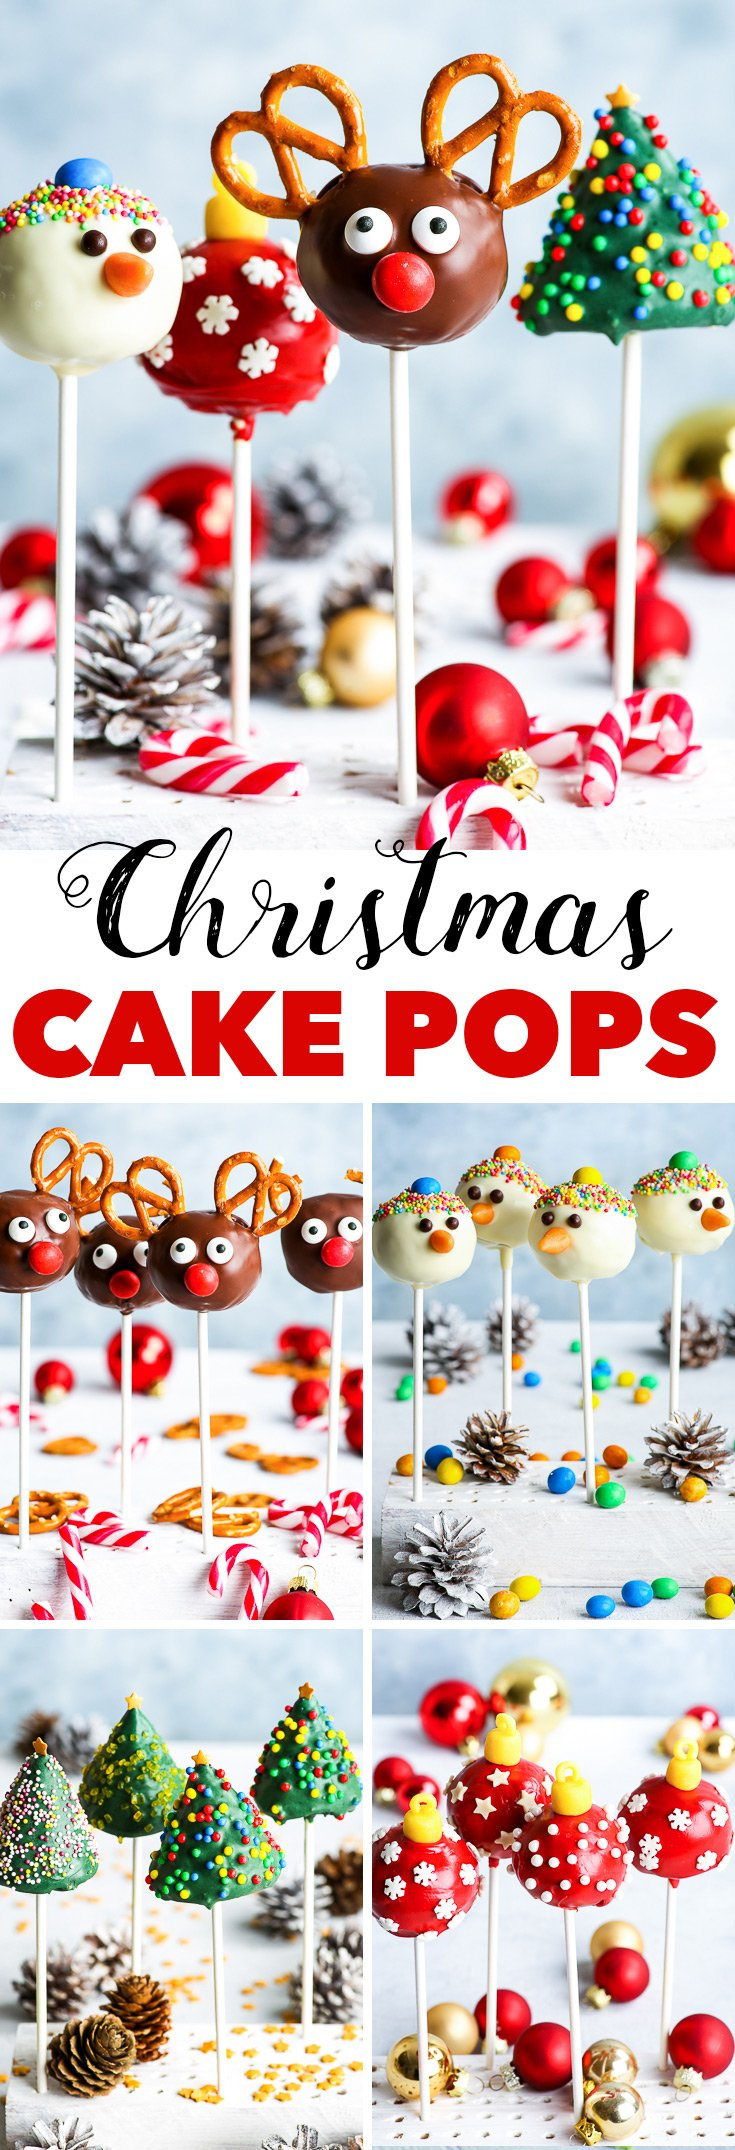 Gluten Free Christmas Cake Pops 4 Ways - Four variations of gluten free Christmas cake pops, each one more adorable than the other. Rudolph cake pops / reindeer cake pops, Christmas tree cake pops, snowman cake pops and Christmas bauble cake pops. The perfect holiday dessert, a super easy Christmas dessert recipe. Also a perfect DIY Christmas dessert. #cakepops #glutenfree #diygift #christmasdesserts